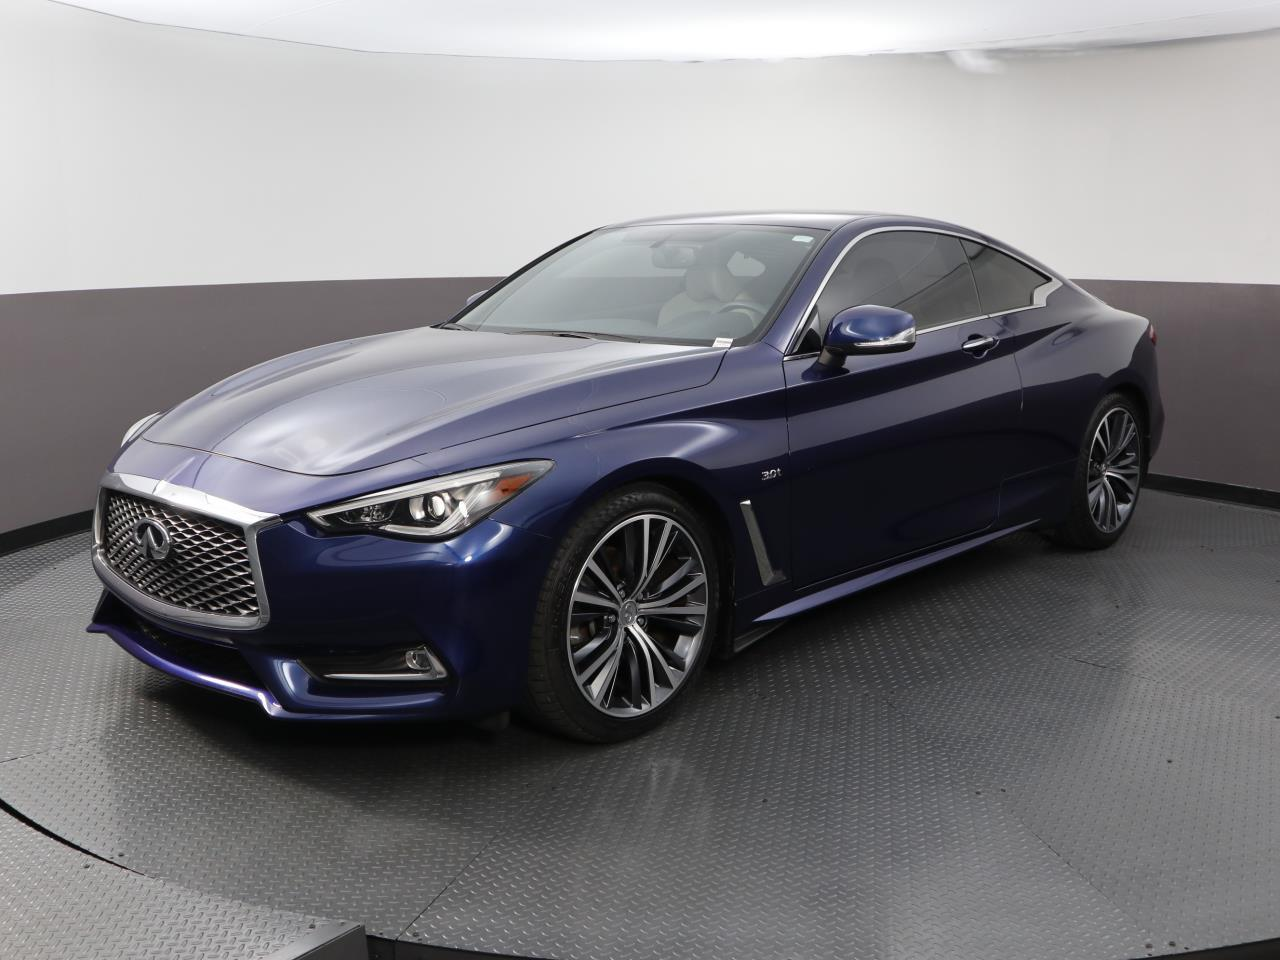 Used INFINITI Q60 2017 WEST PALM 3.0T PREMIUM